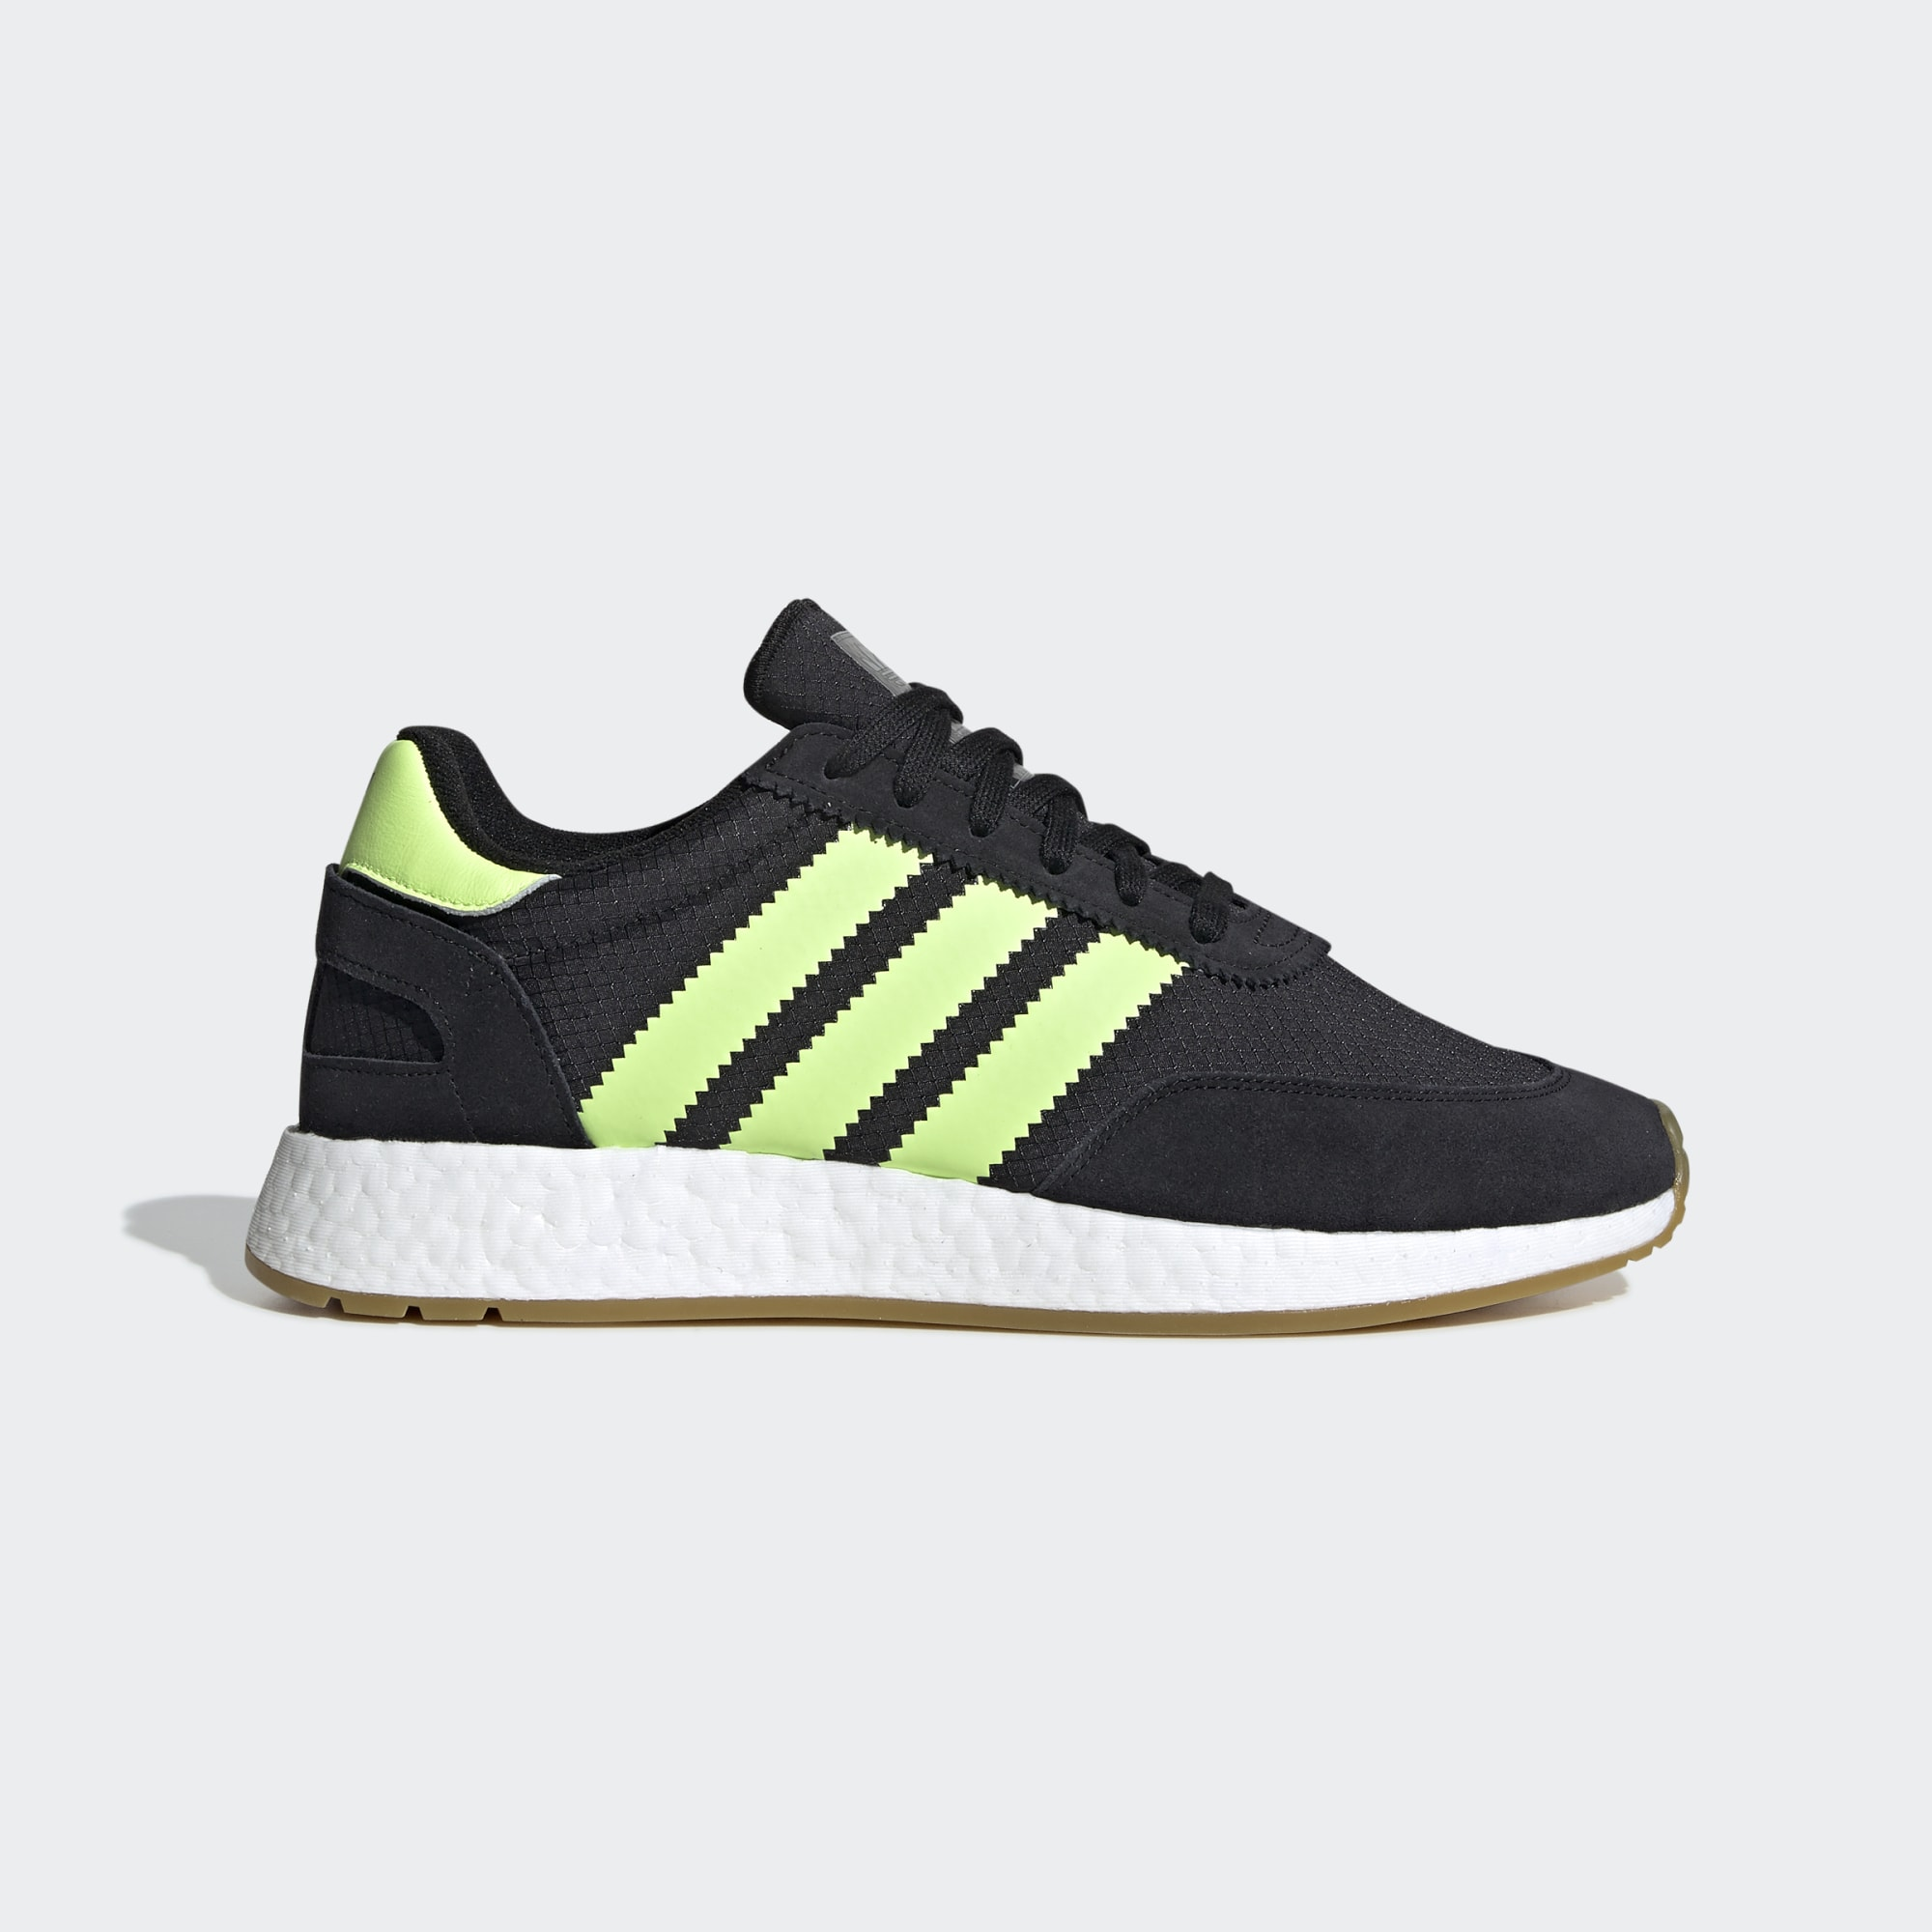 Adidas I-5923 Shoes - Core Black / Hi-Res Yellow / Gum